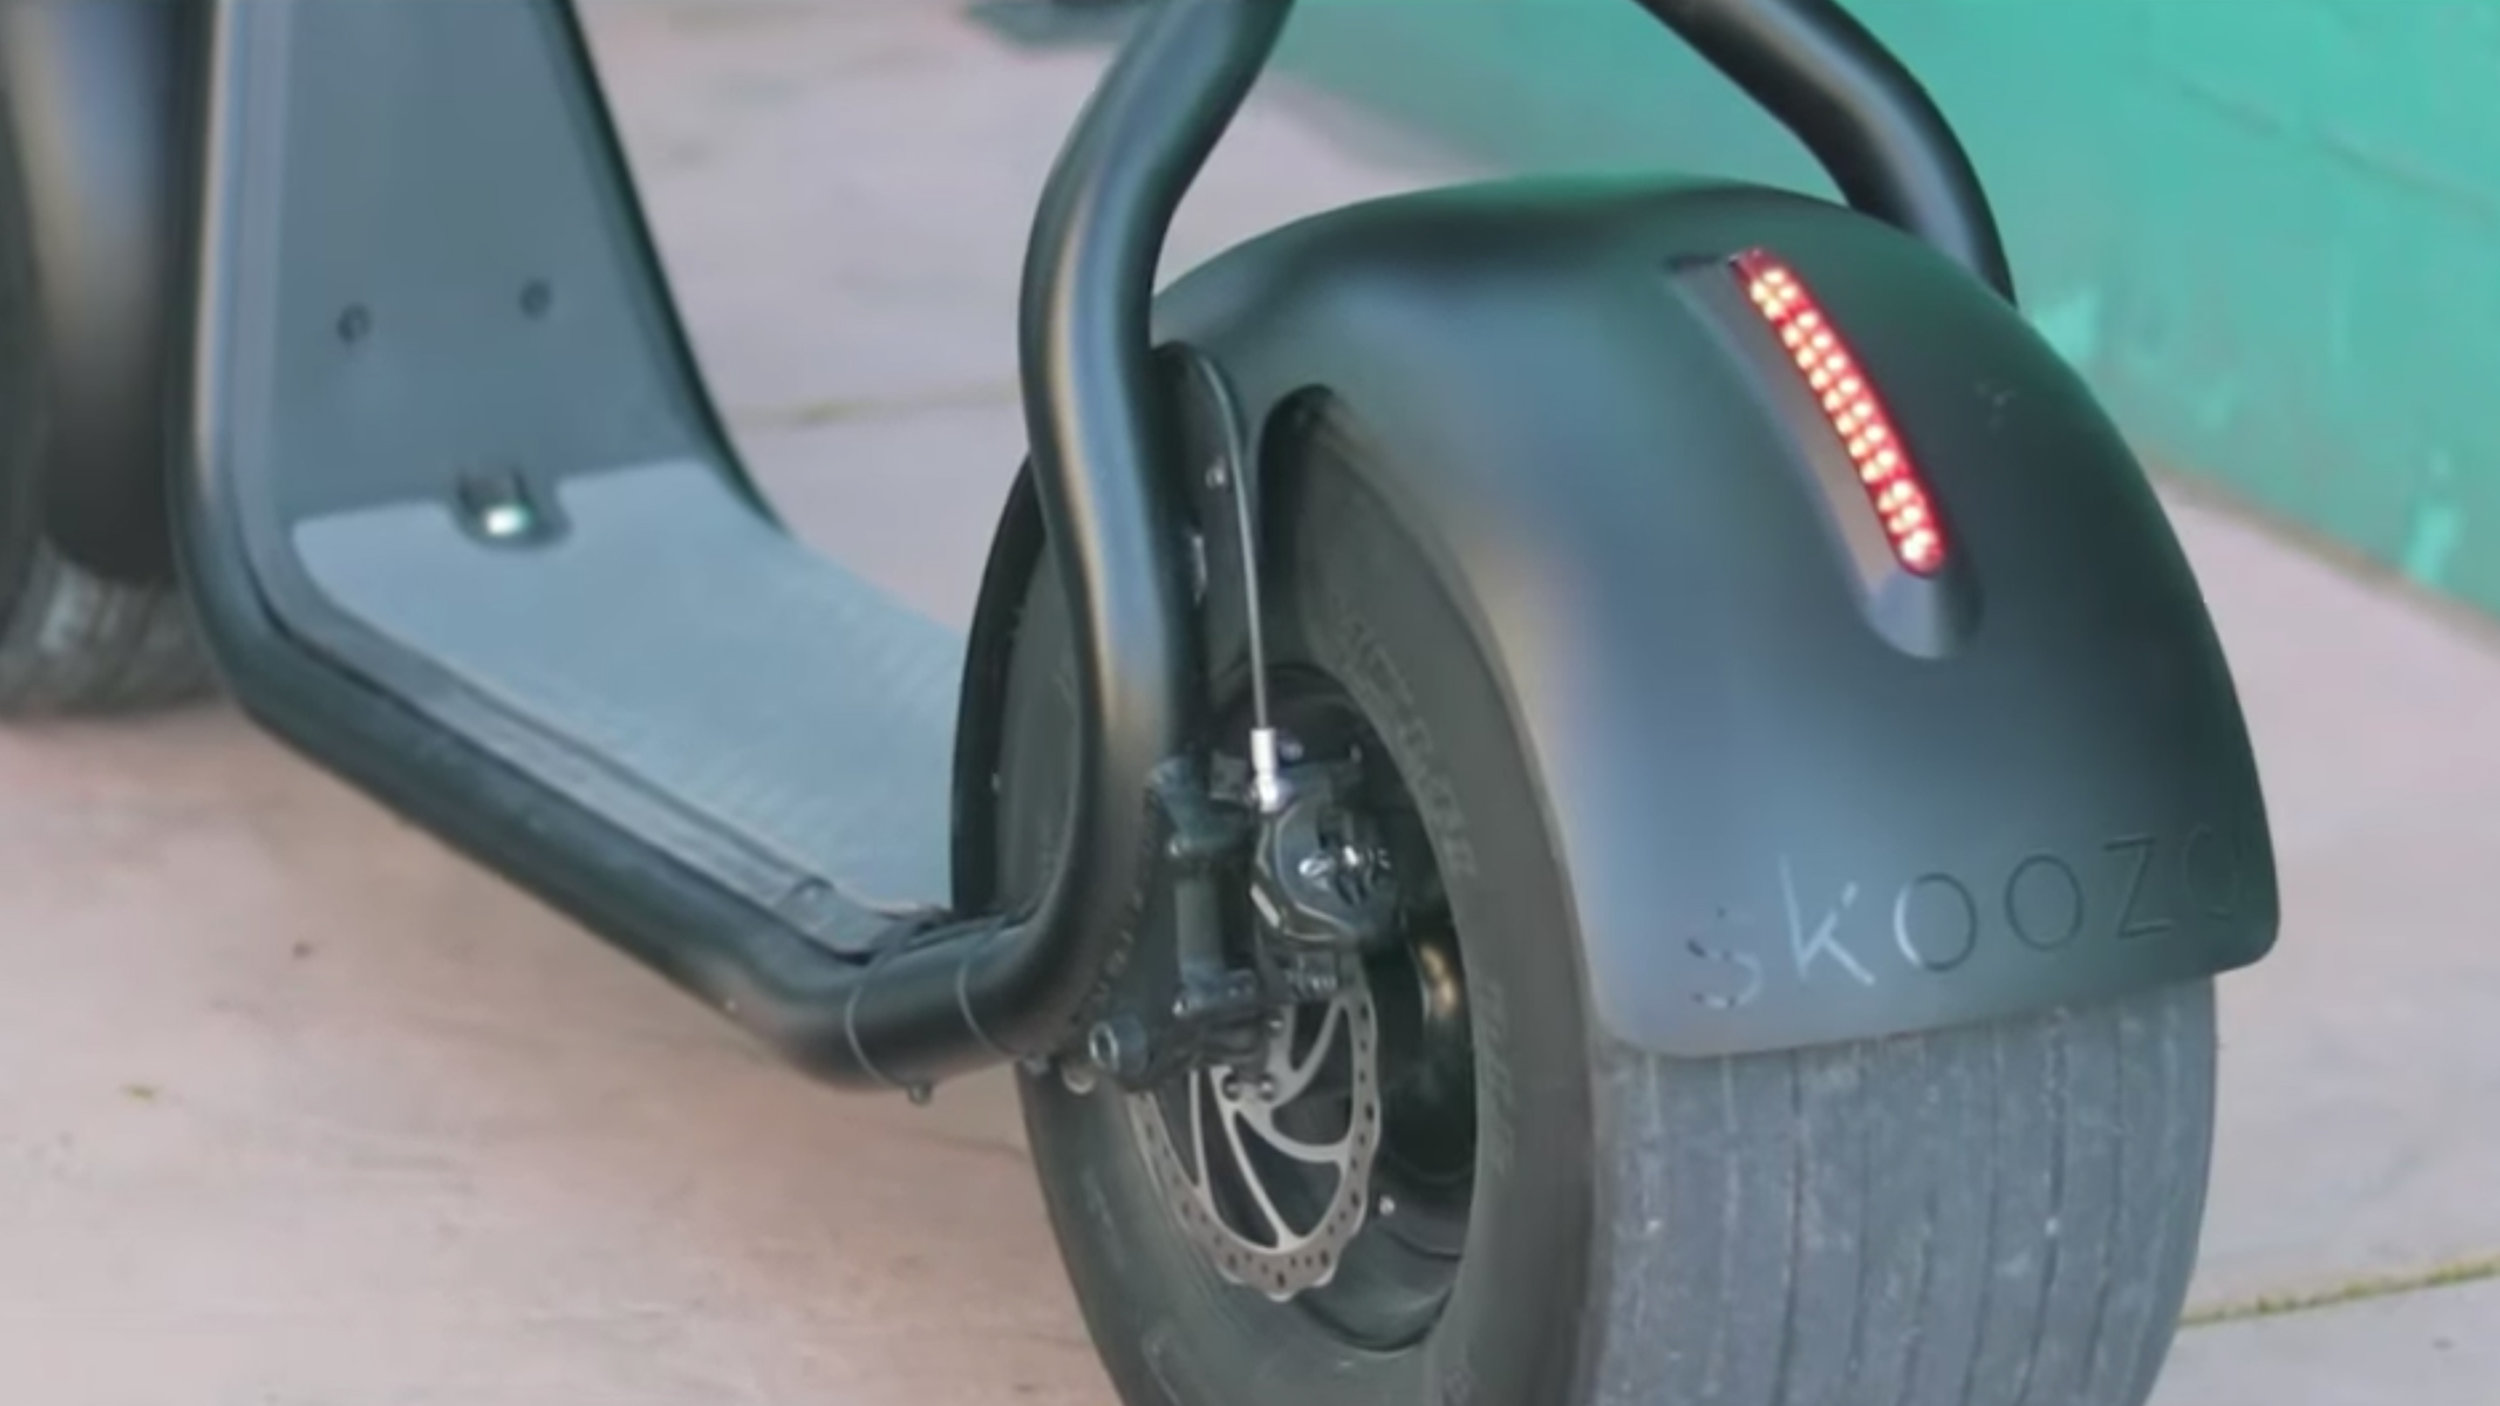 Skooza K1S fat tire electric scooter review: The TESLA of